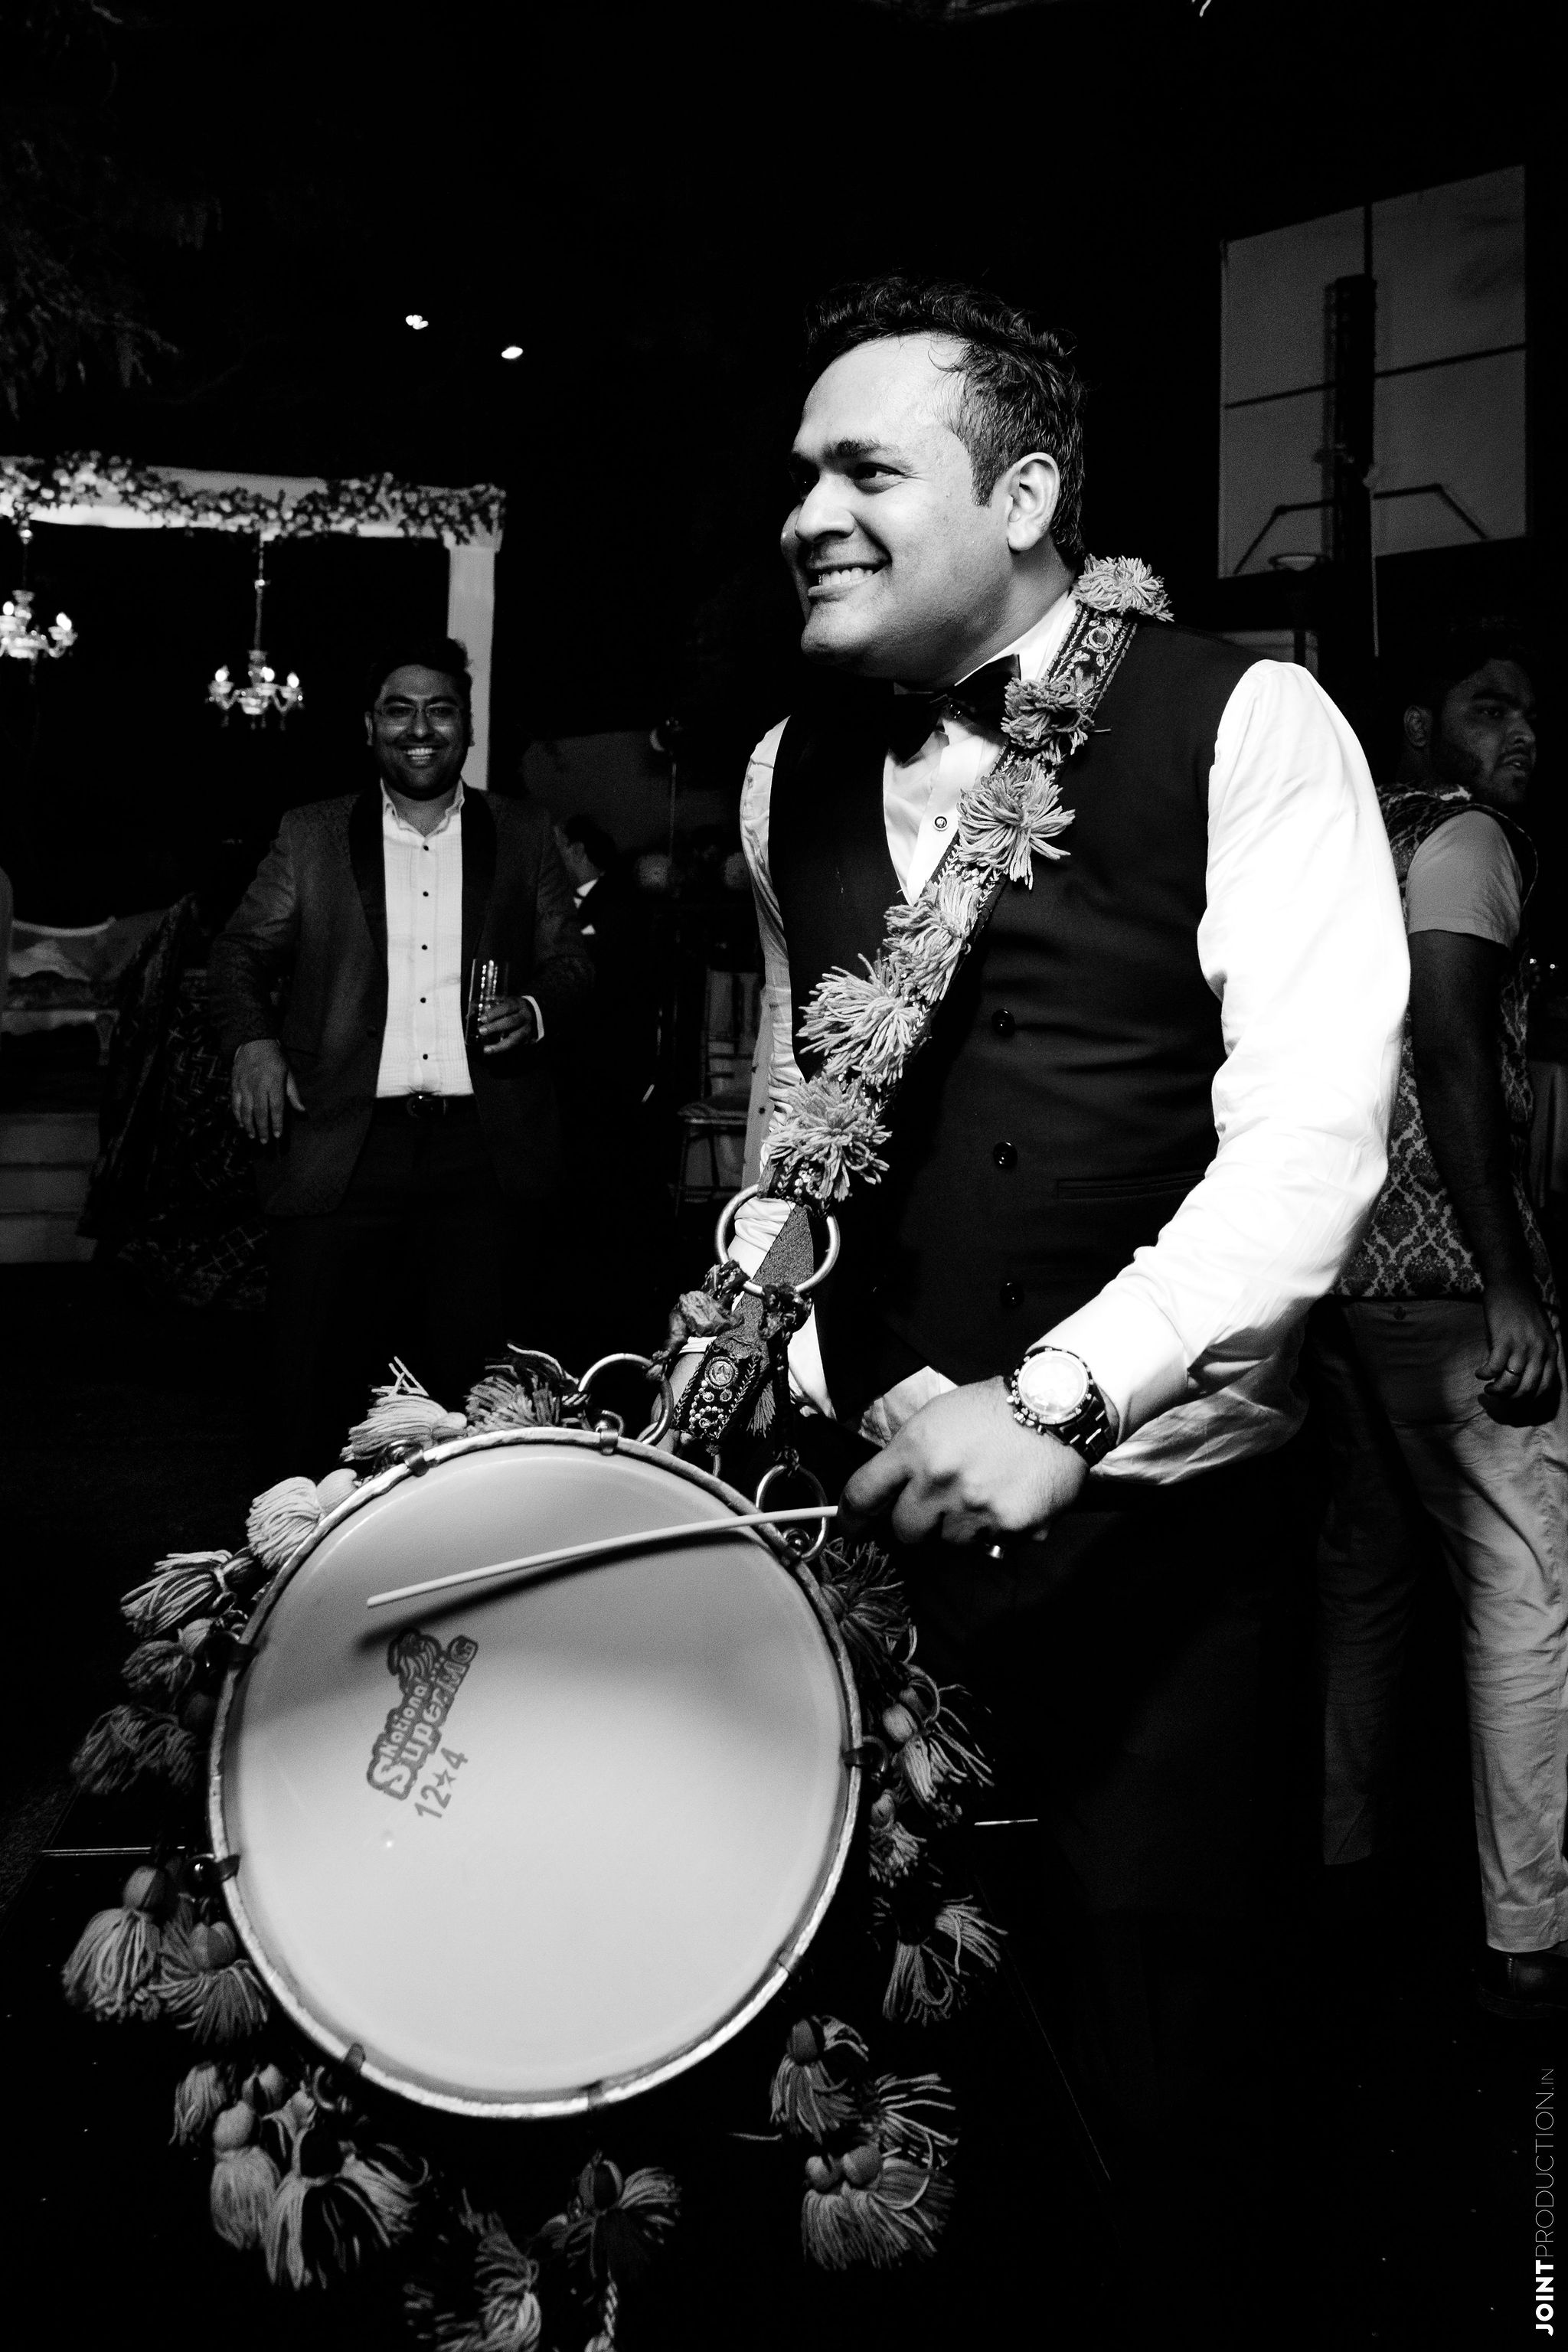 bnw shot of the groom playing dhol